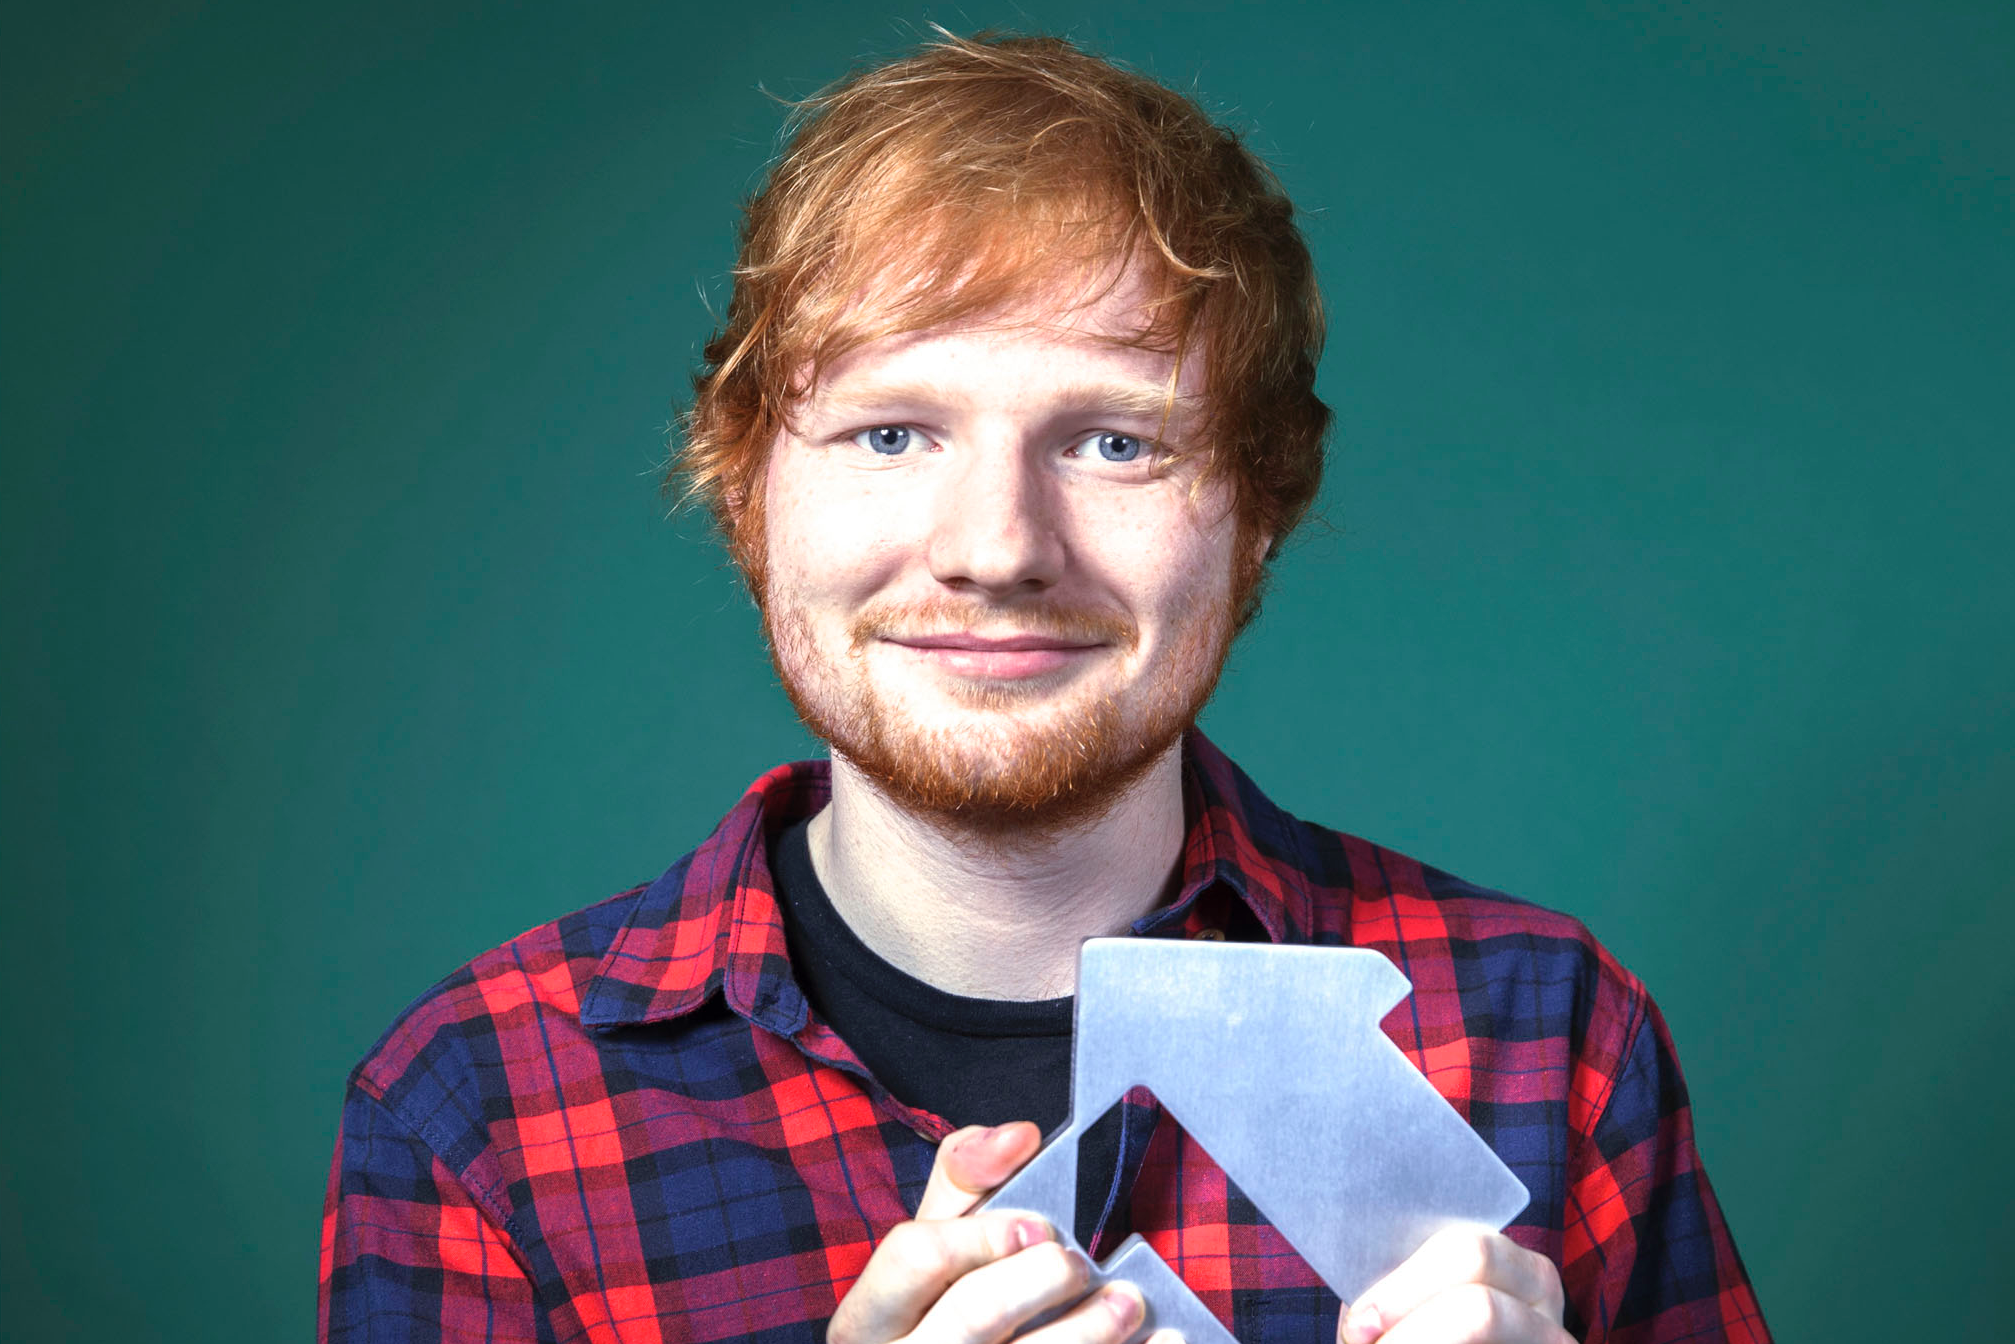 ed sheeran - photo #23